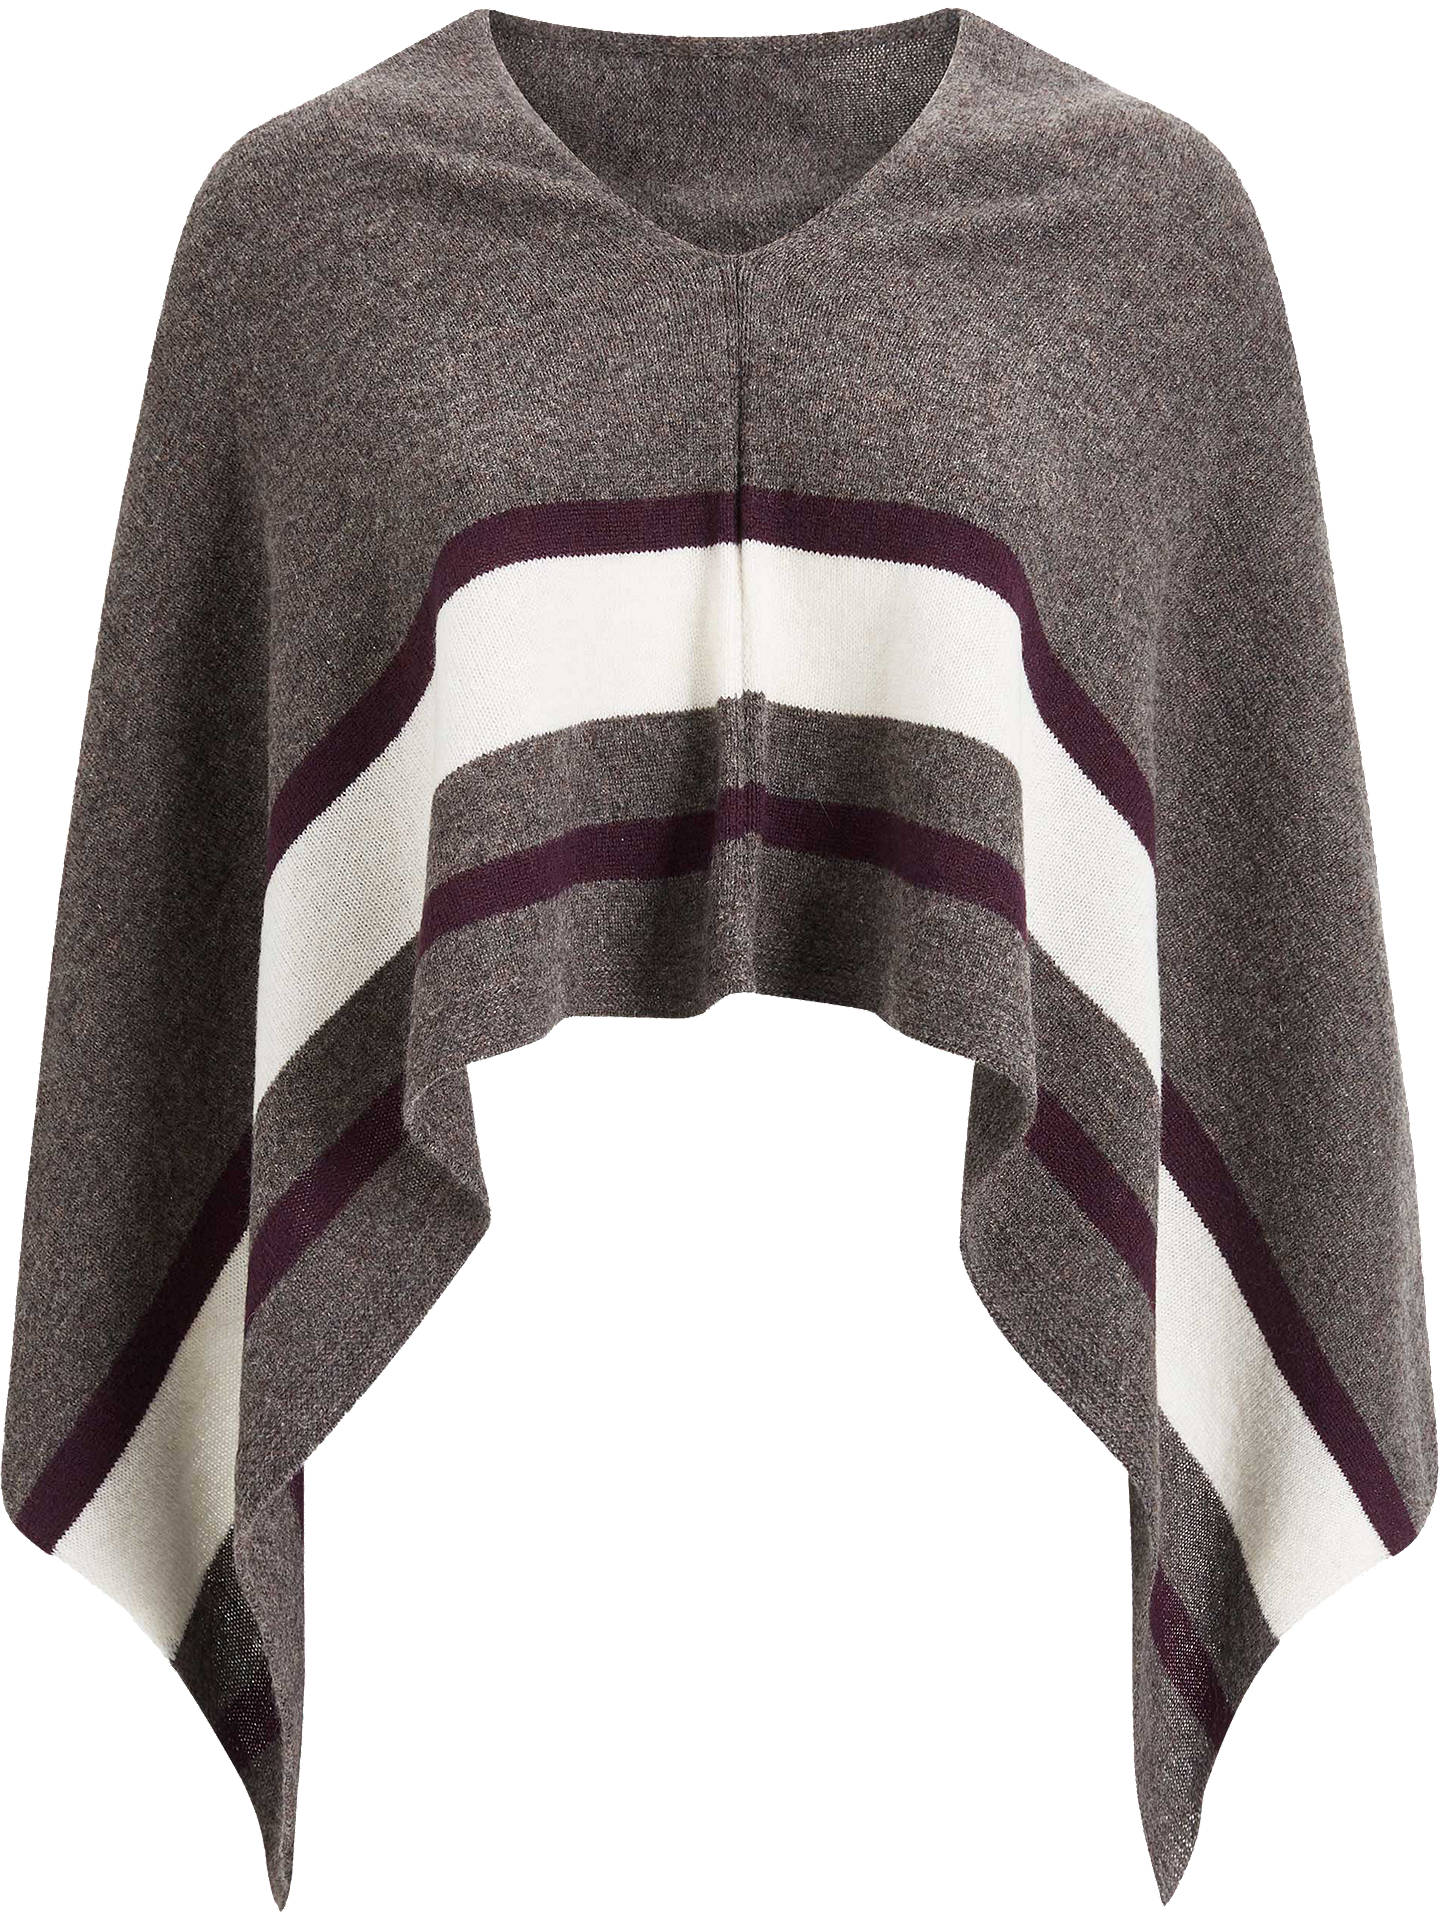 BuyBrora Cashmere Colour Block Knit Poncho, Elephant Online at johnlewis.com